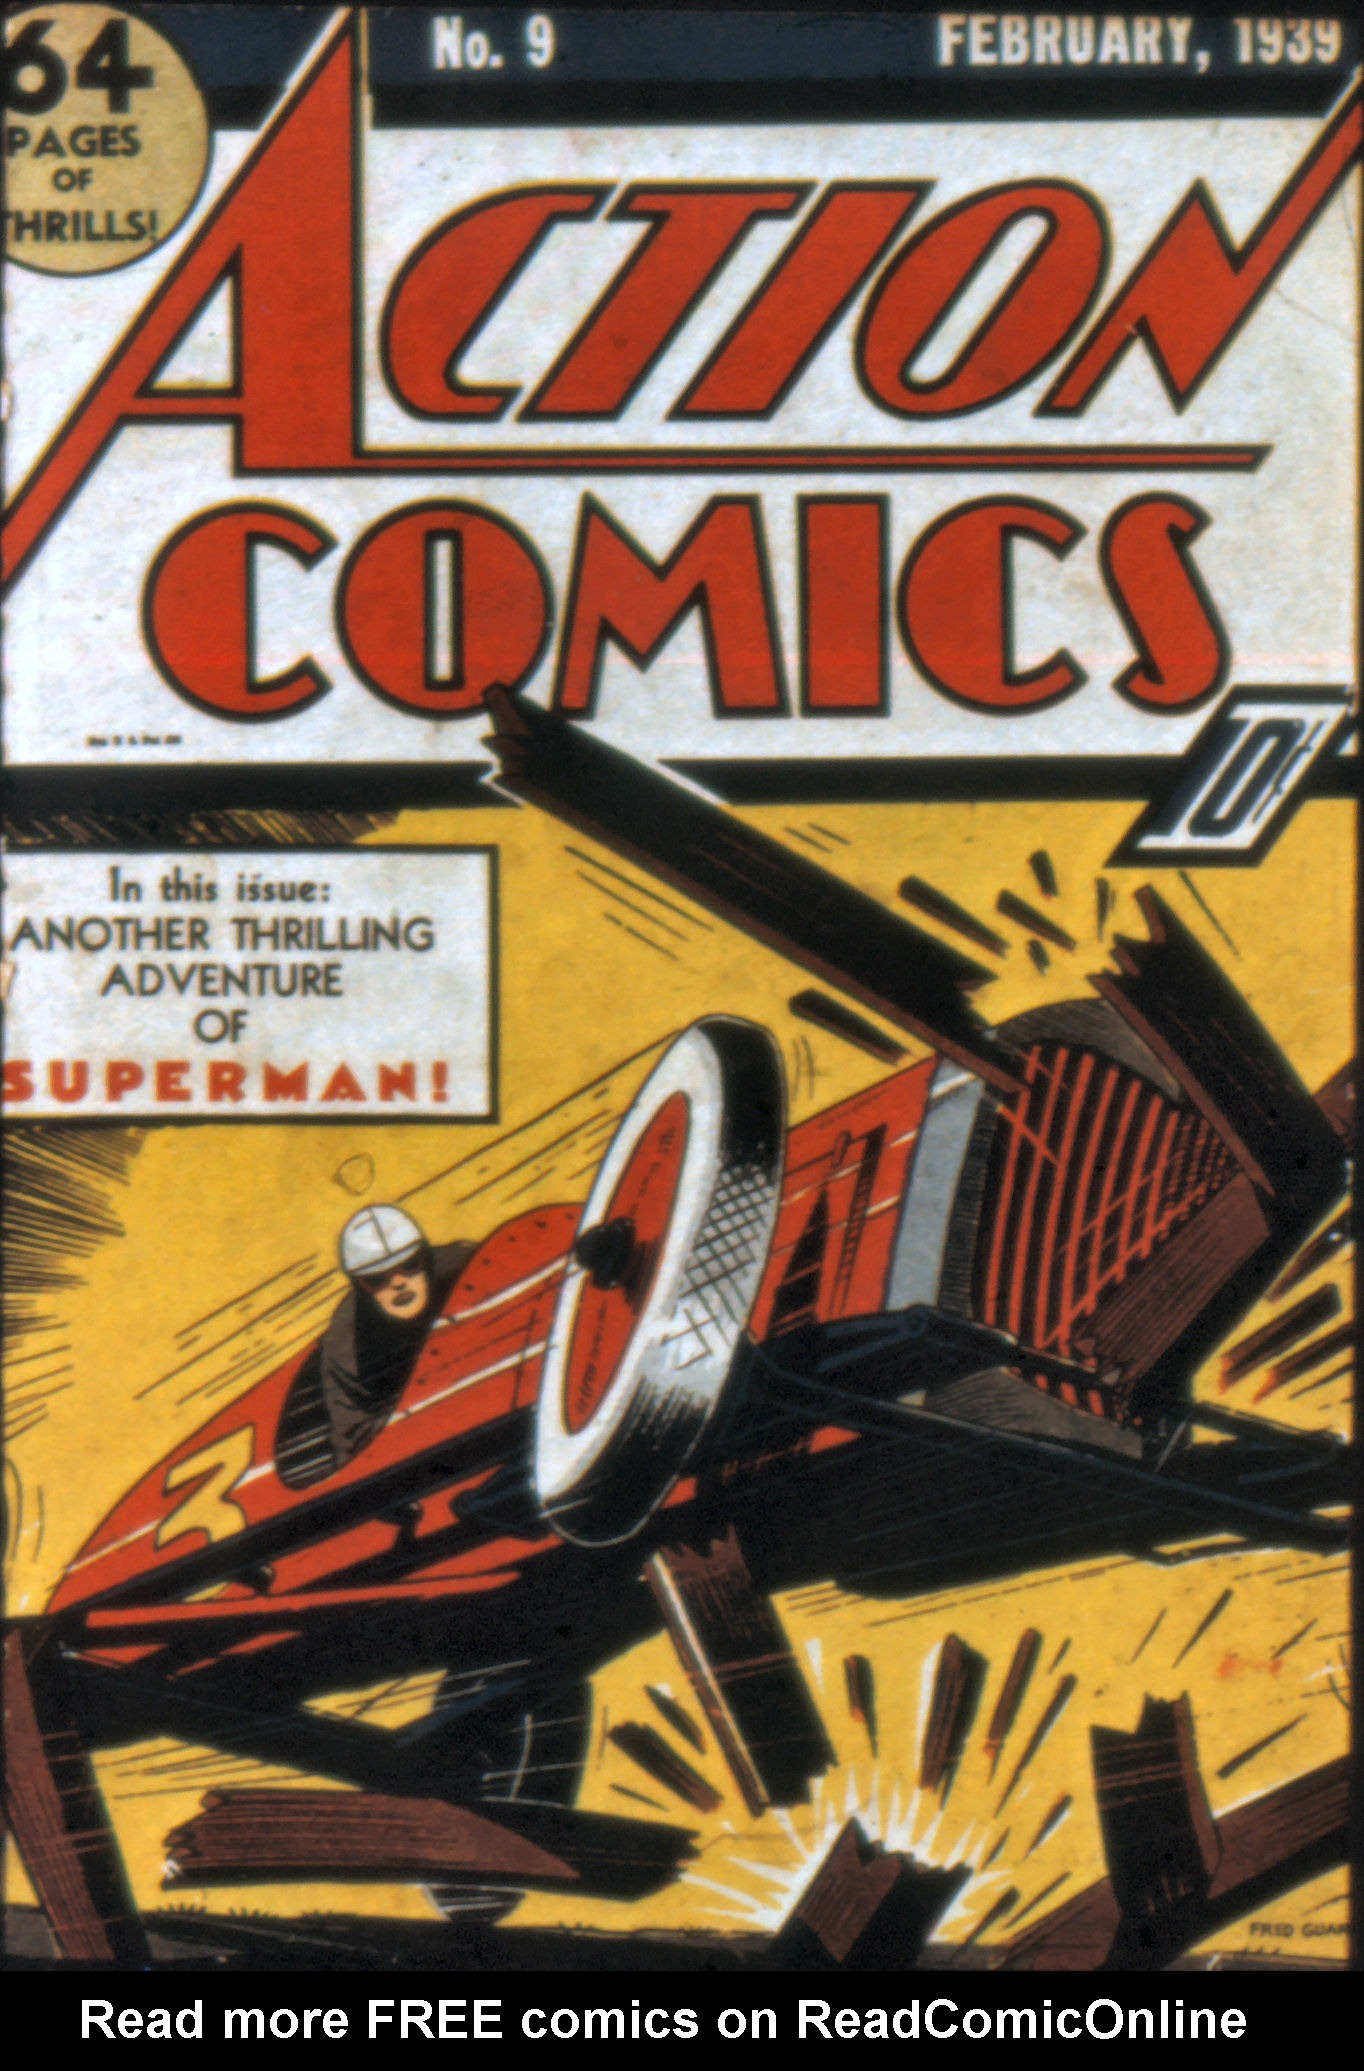 Read online Action Comics (1938) comic -  Issue #9 - 1